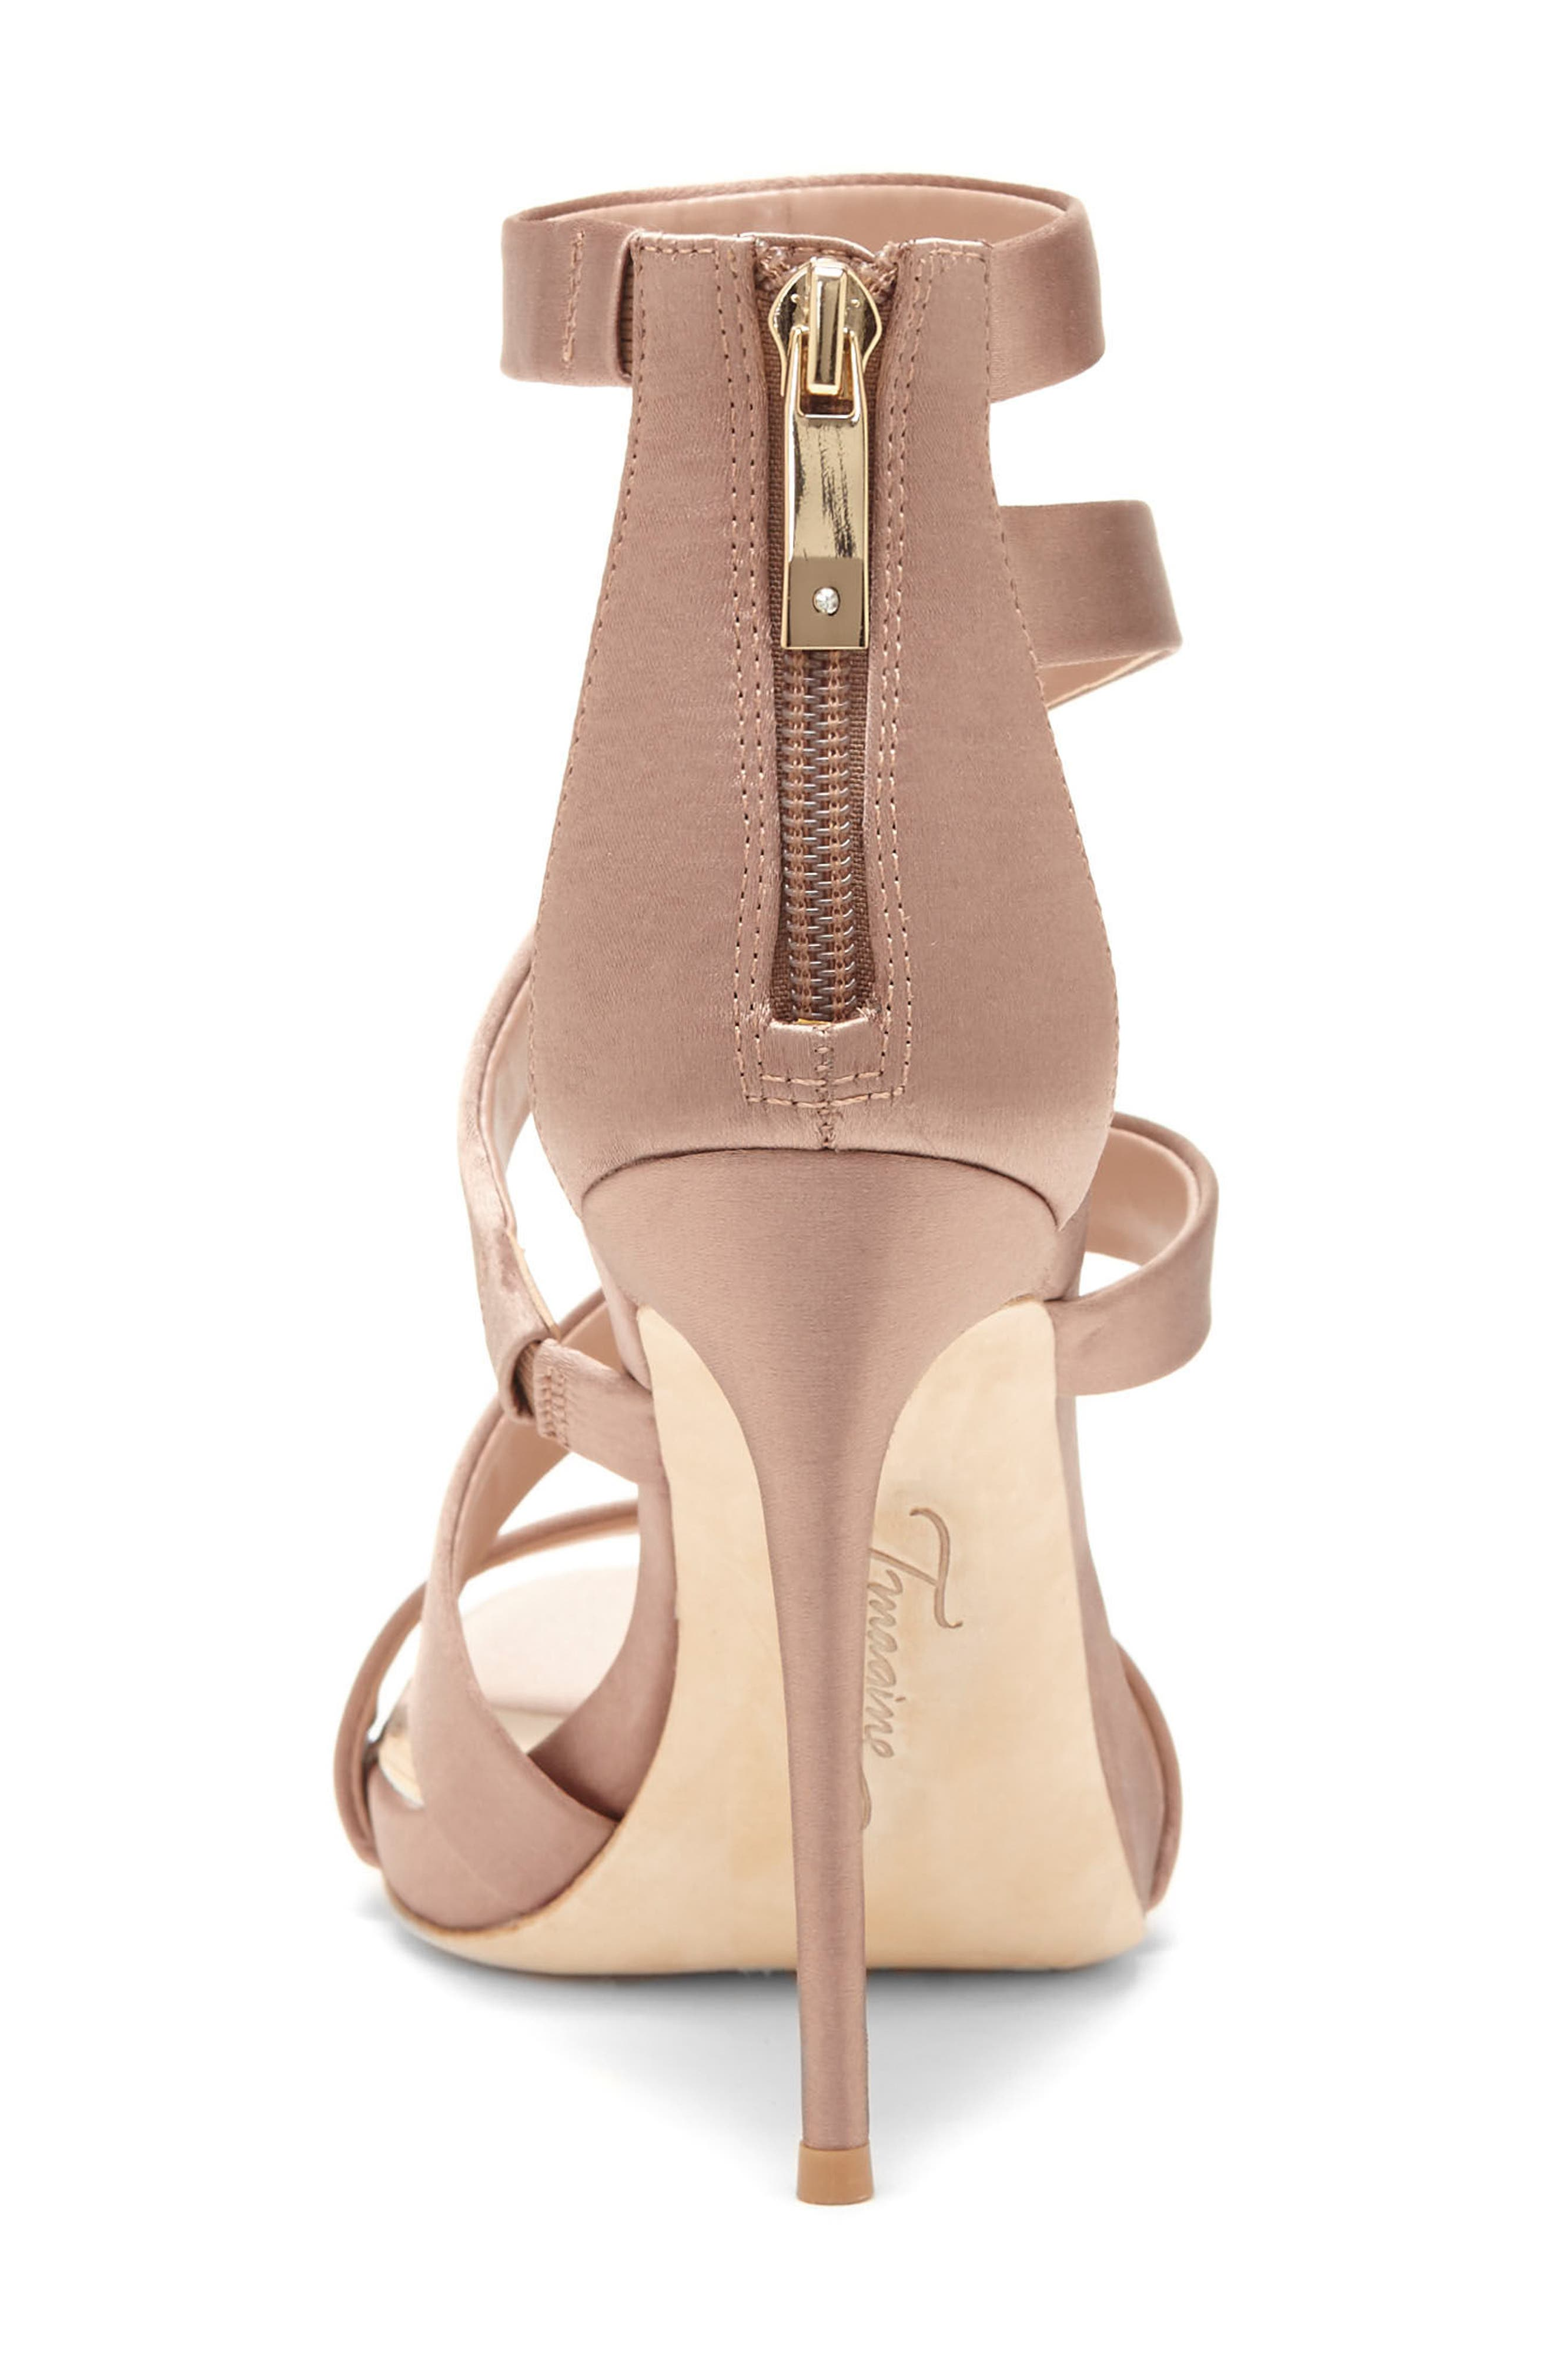 Imagine Vince Camuto Dalles Tall Strappy Sandal,                             Alternate thumbnail 8, color,                             WARM TAUPE SATIN